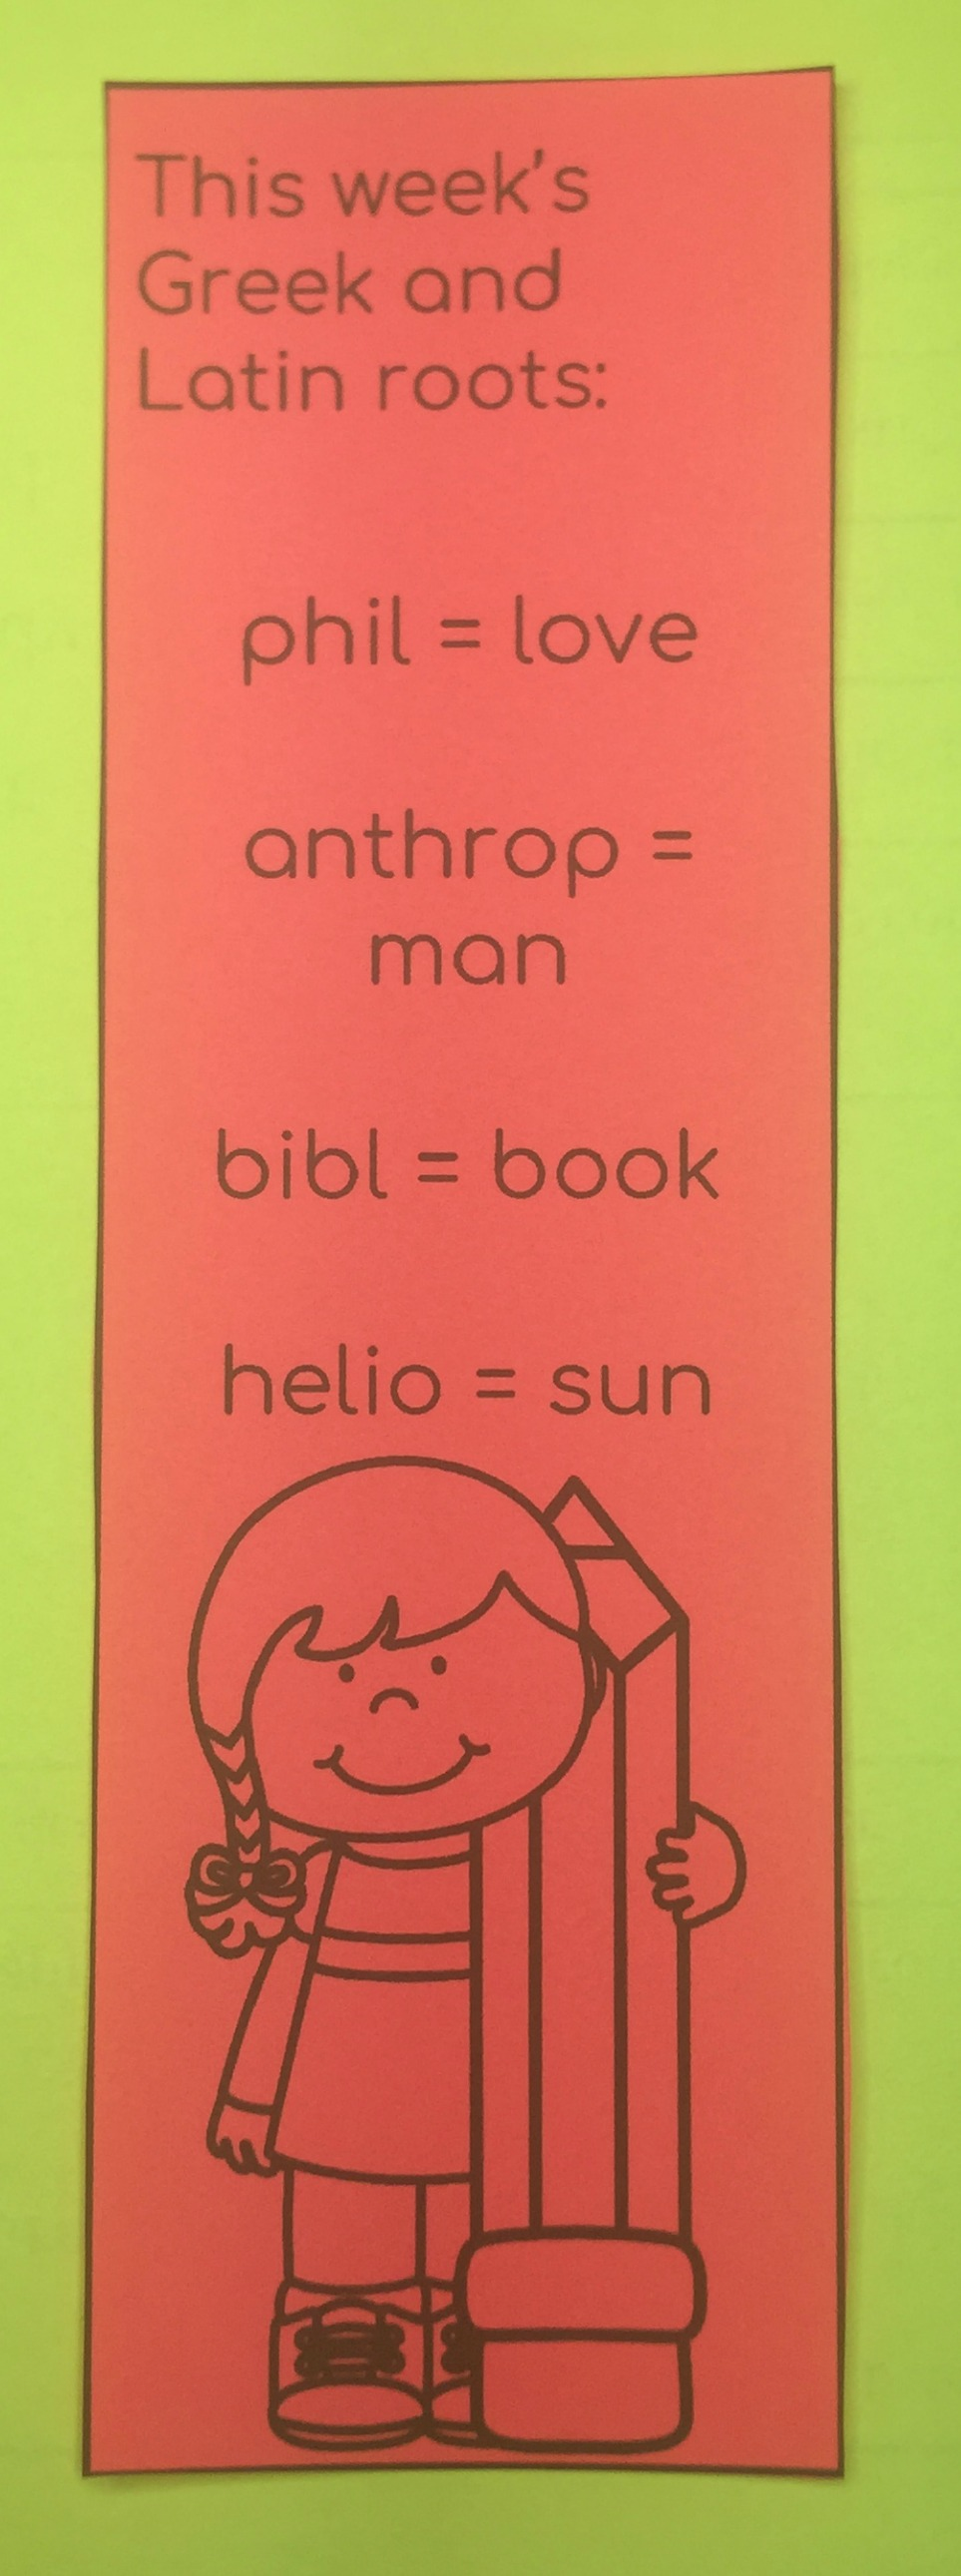 Having the right tools is important when teaching Greek and Latin roots.